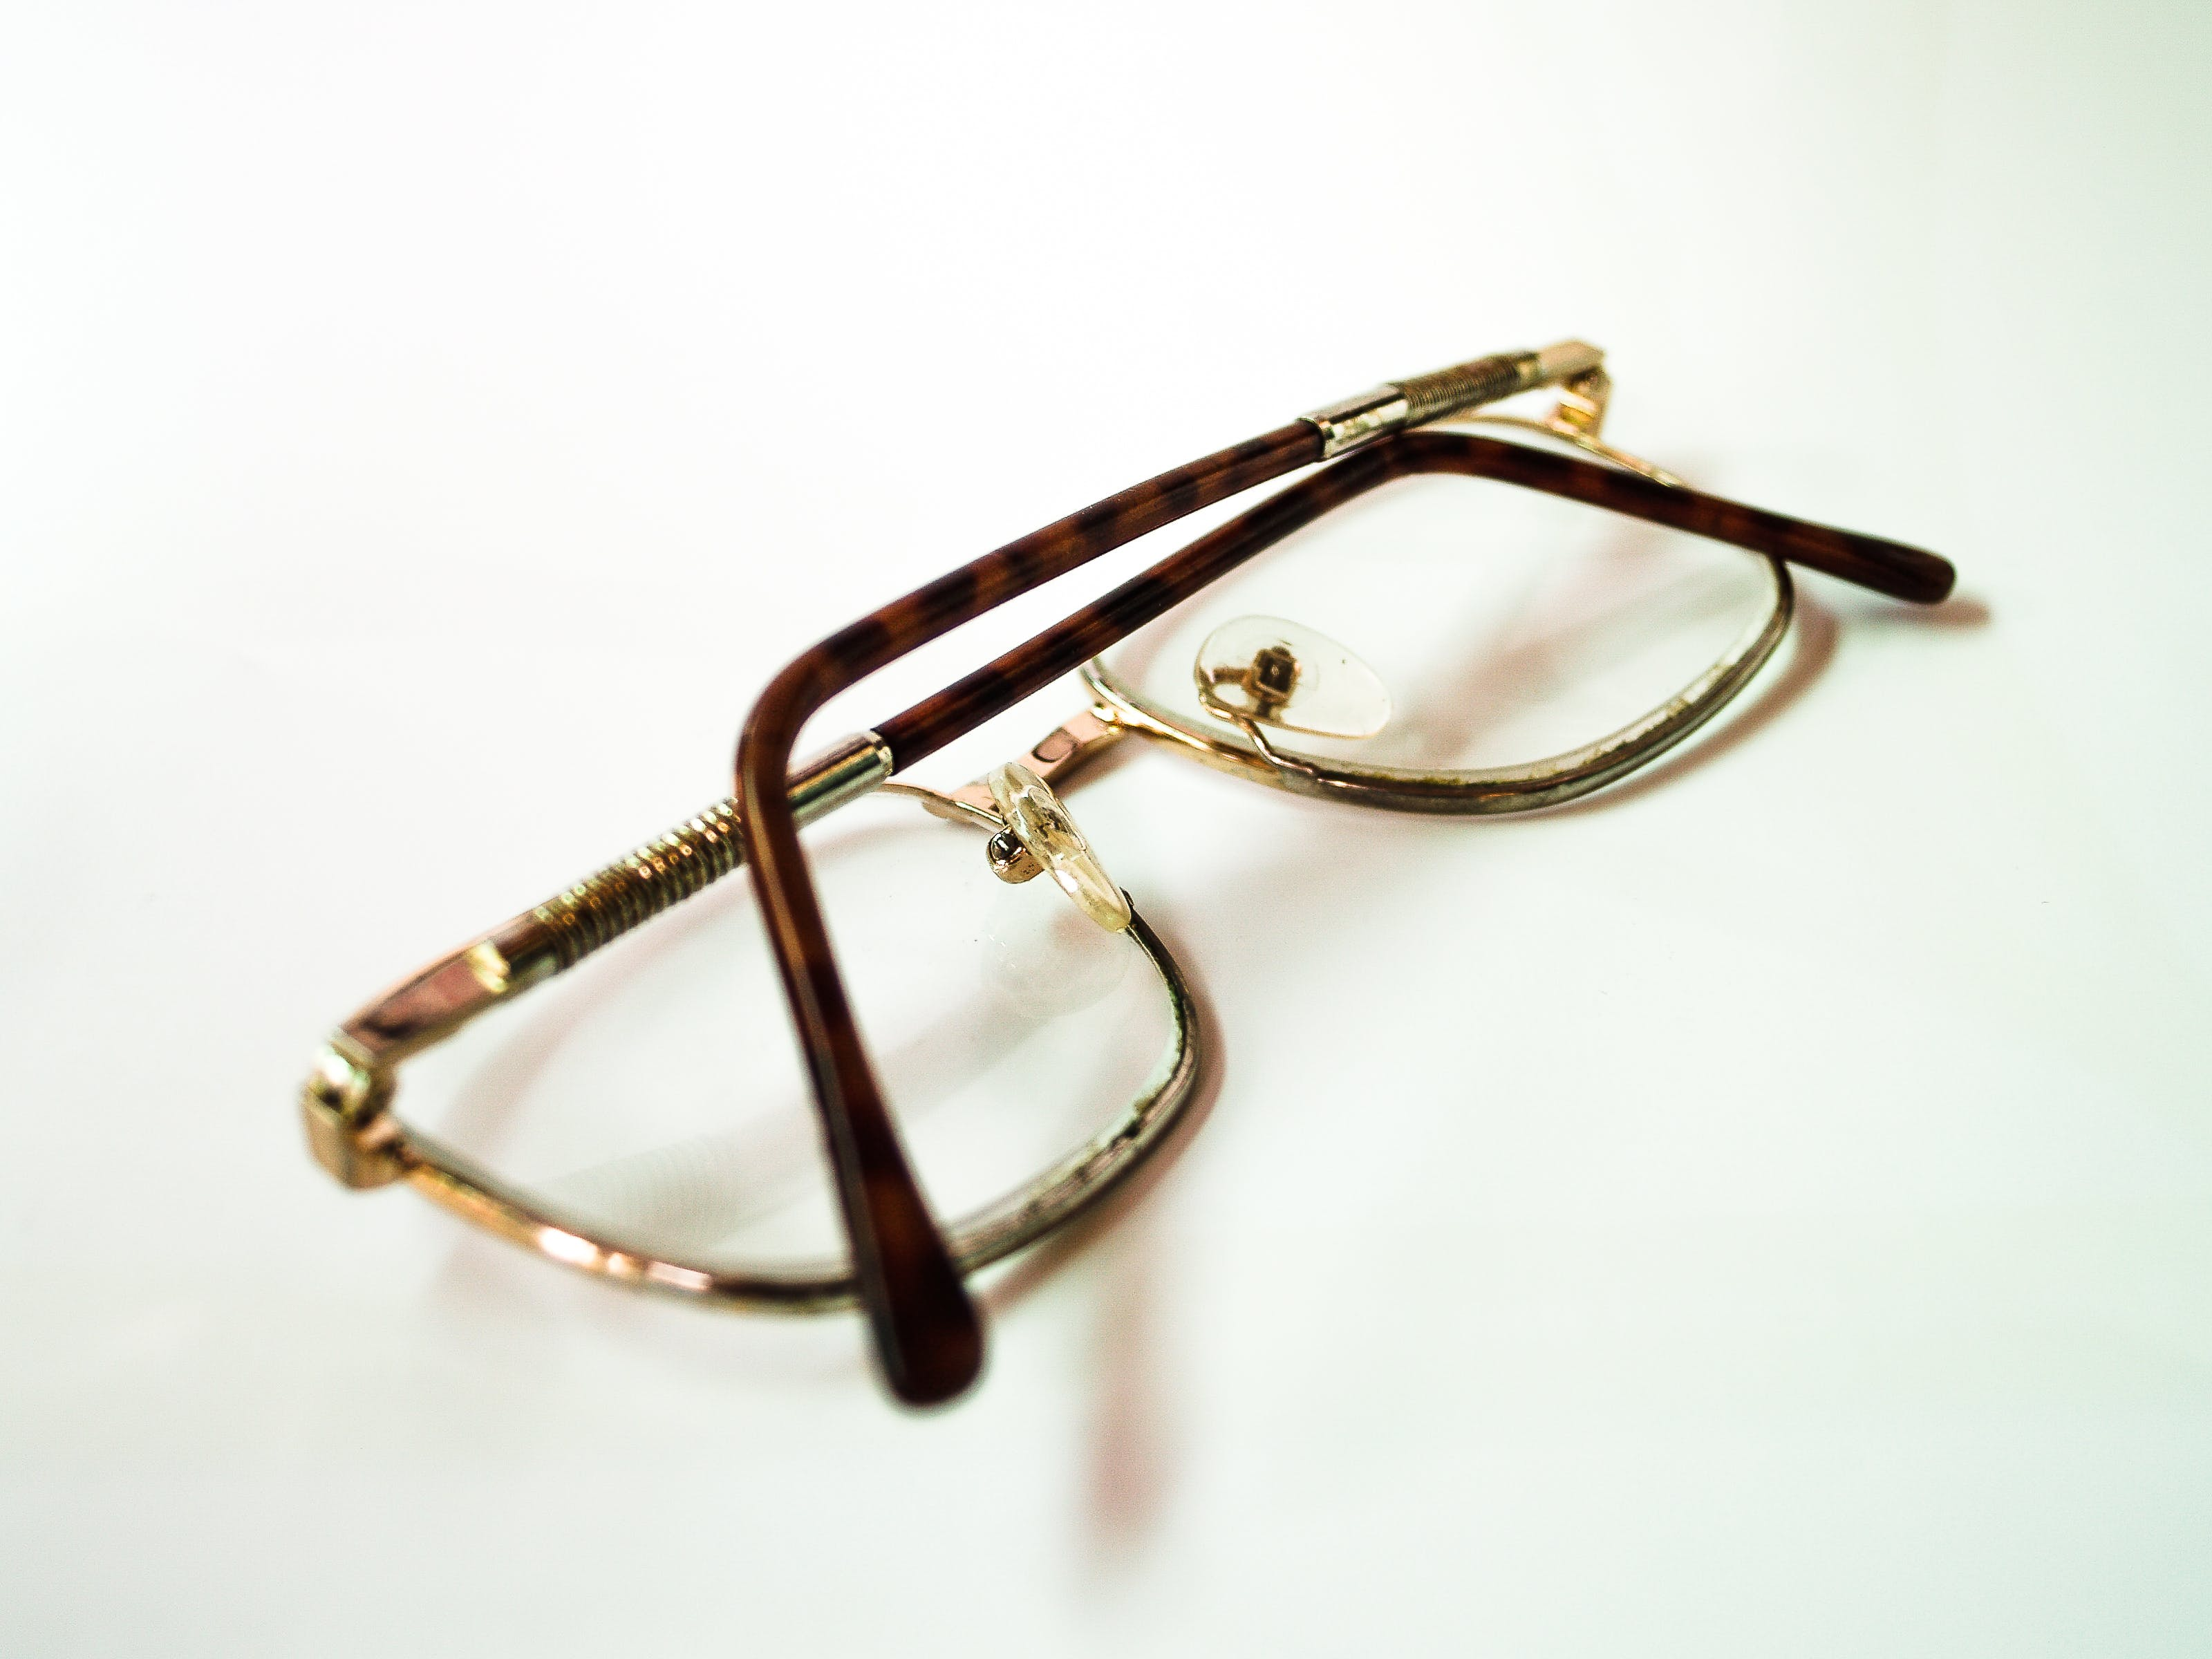 Gold Framed Eyeglasses on White Surface